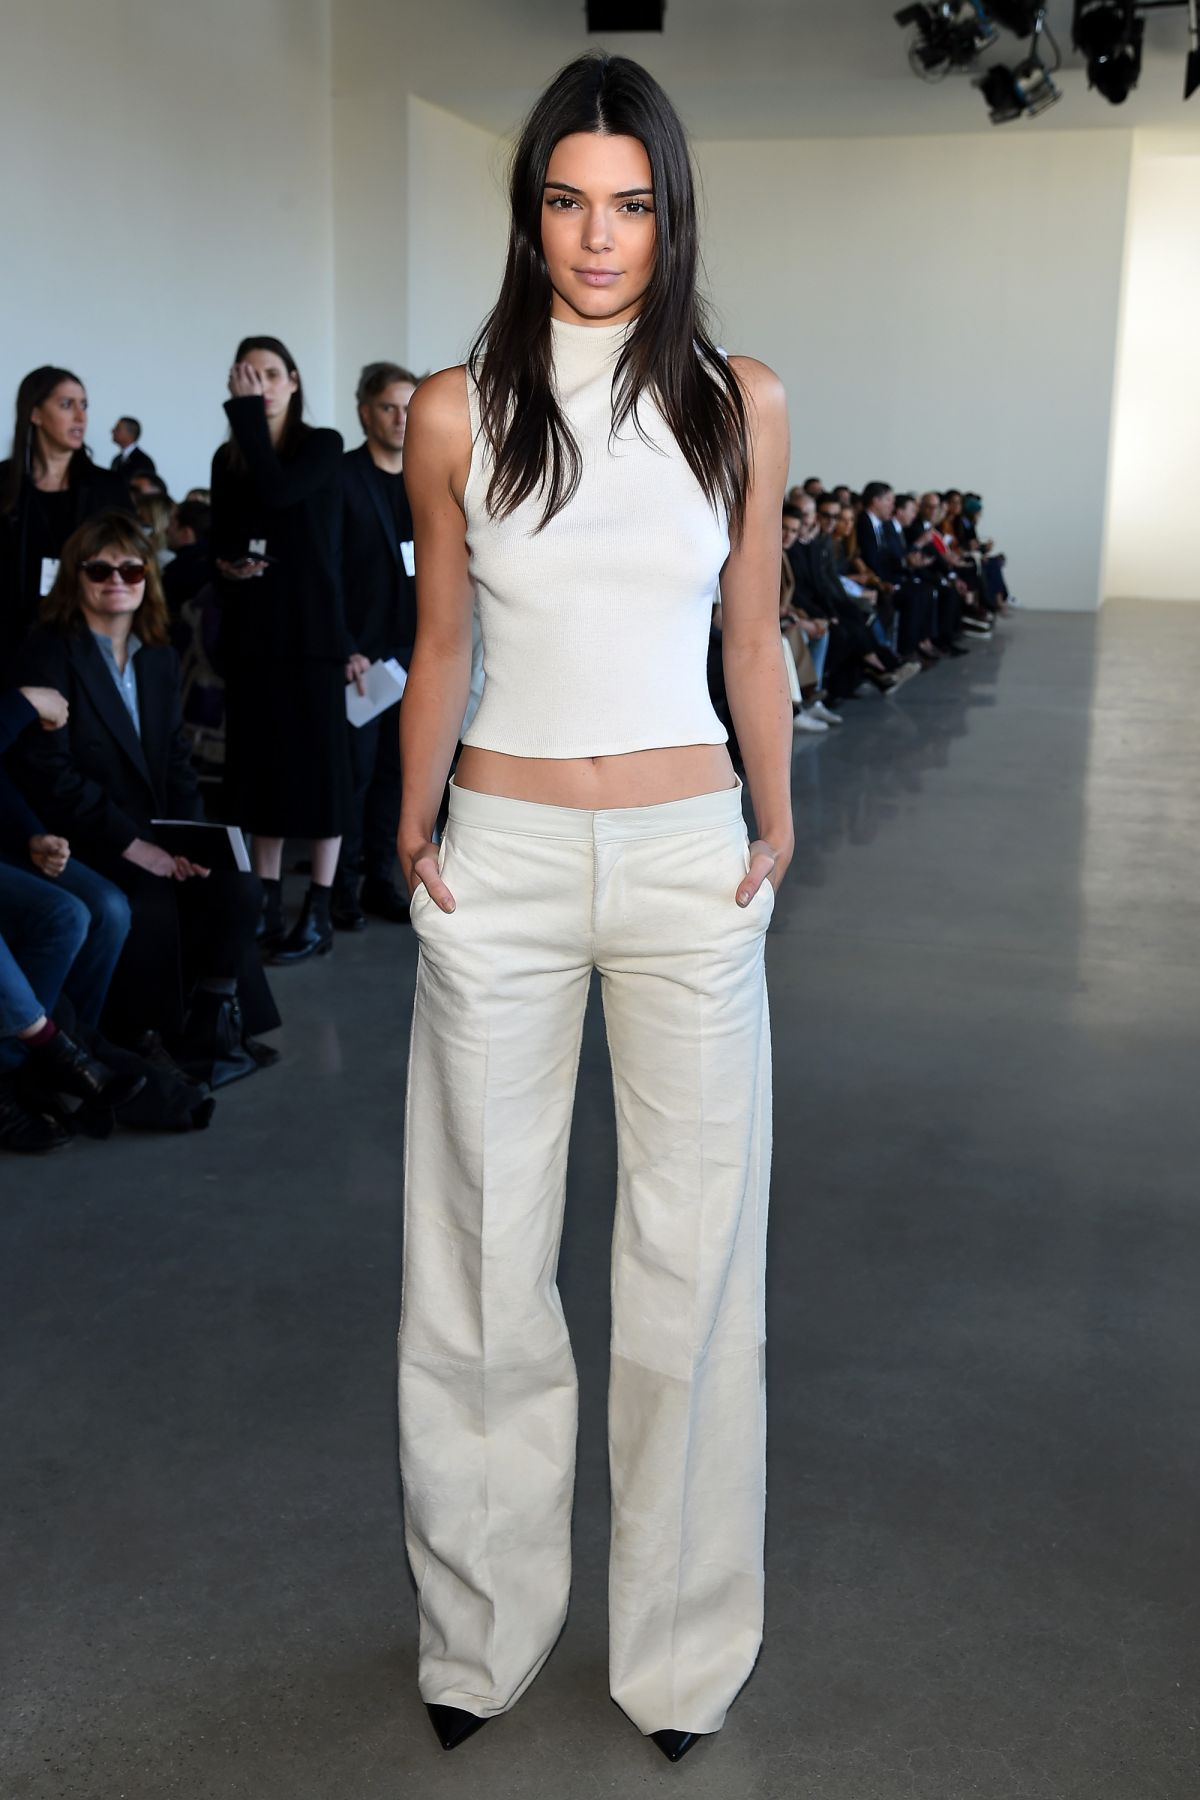 Kendall Jenner At Calvin Klein Fall 2016 Fashion Show At New York Fashion Week 02 18 2016